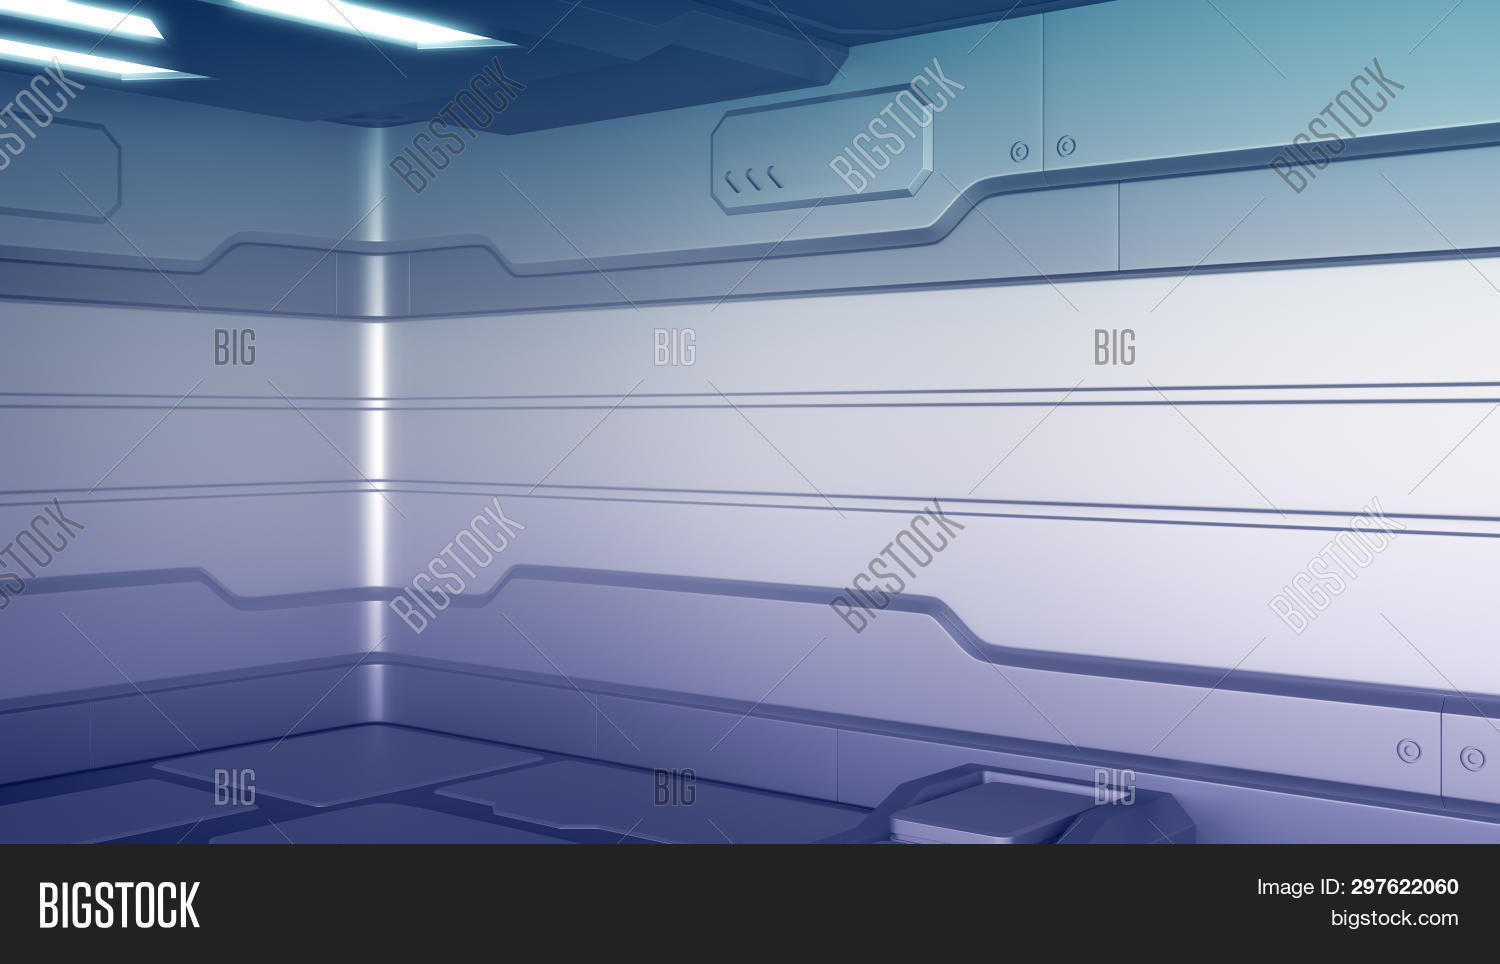 Sci-fi Space Station Image & Photo (Free Trial) | Bigstock